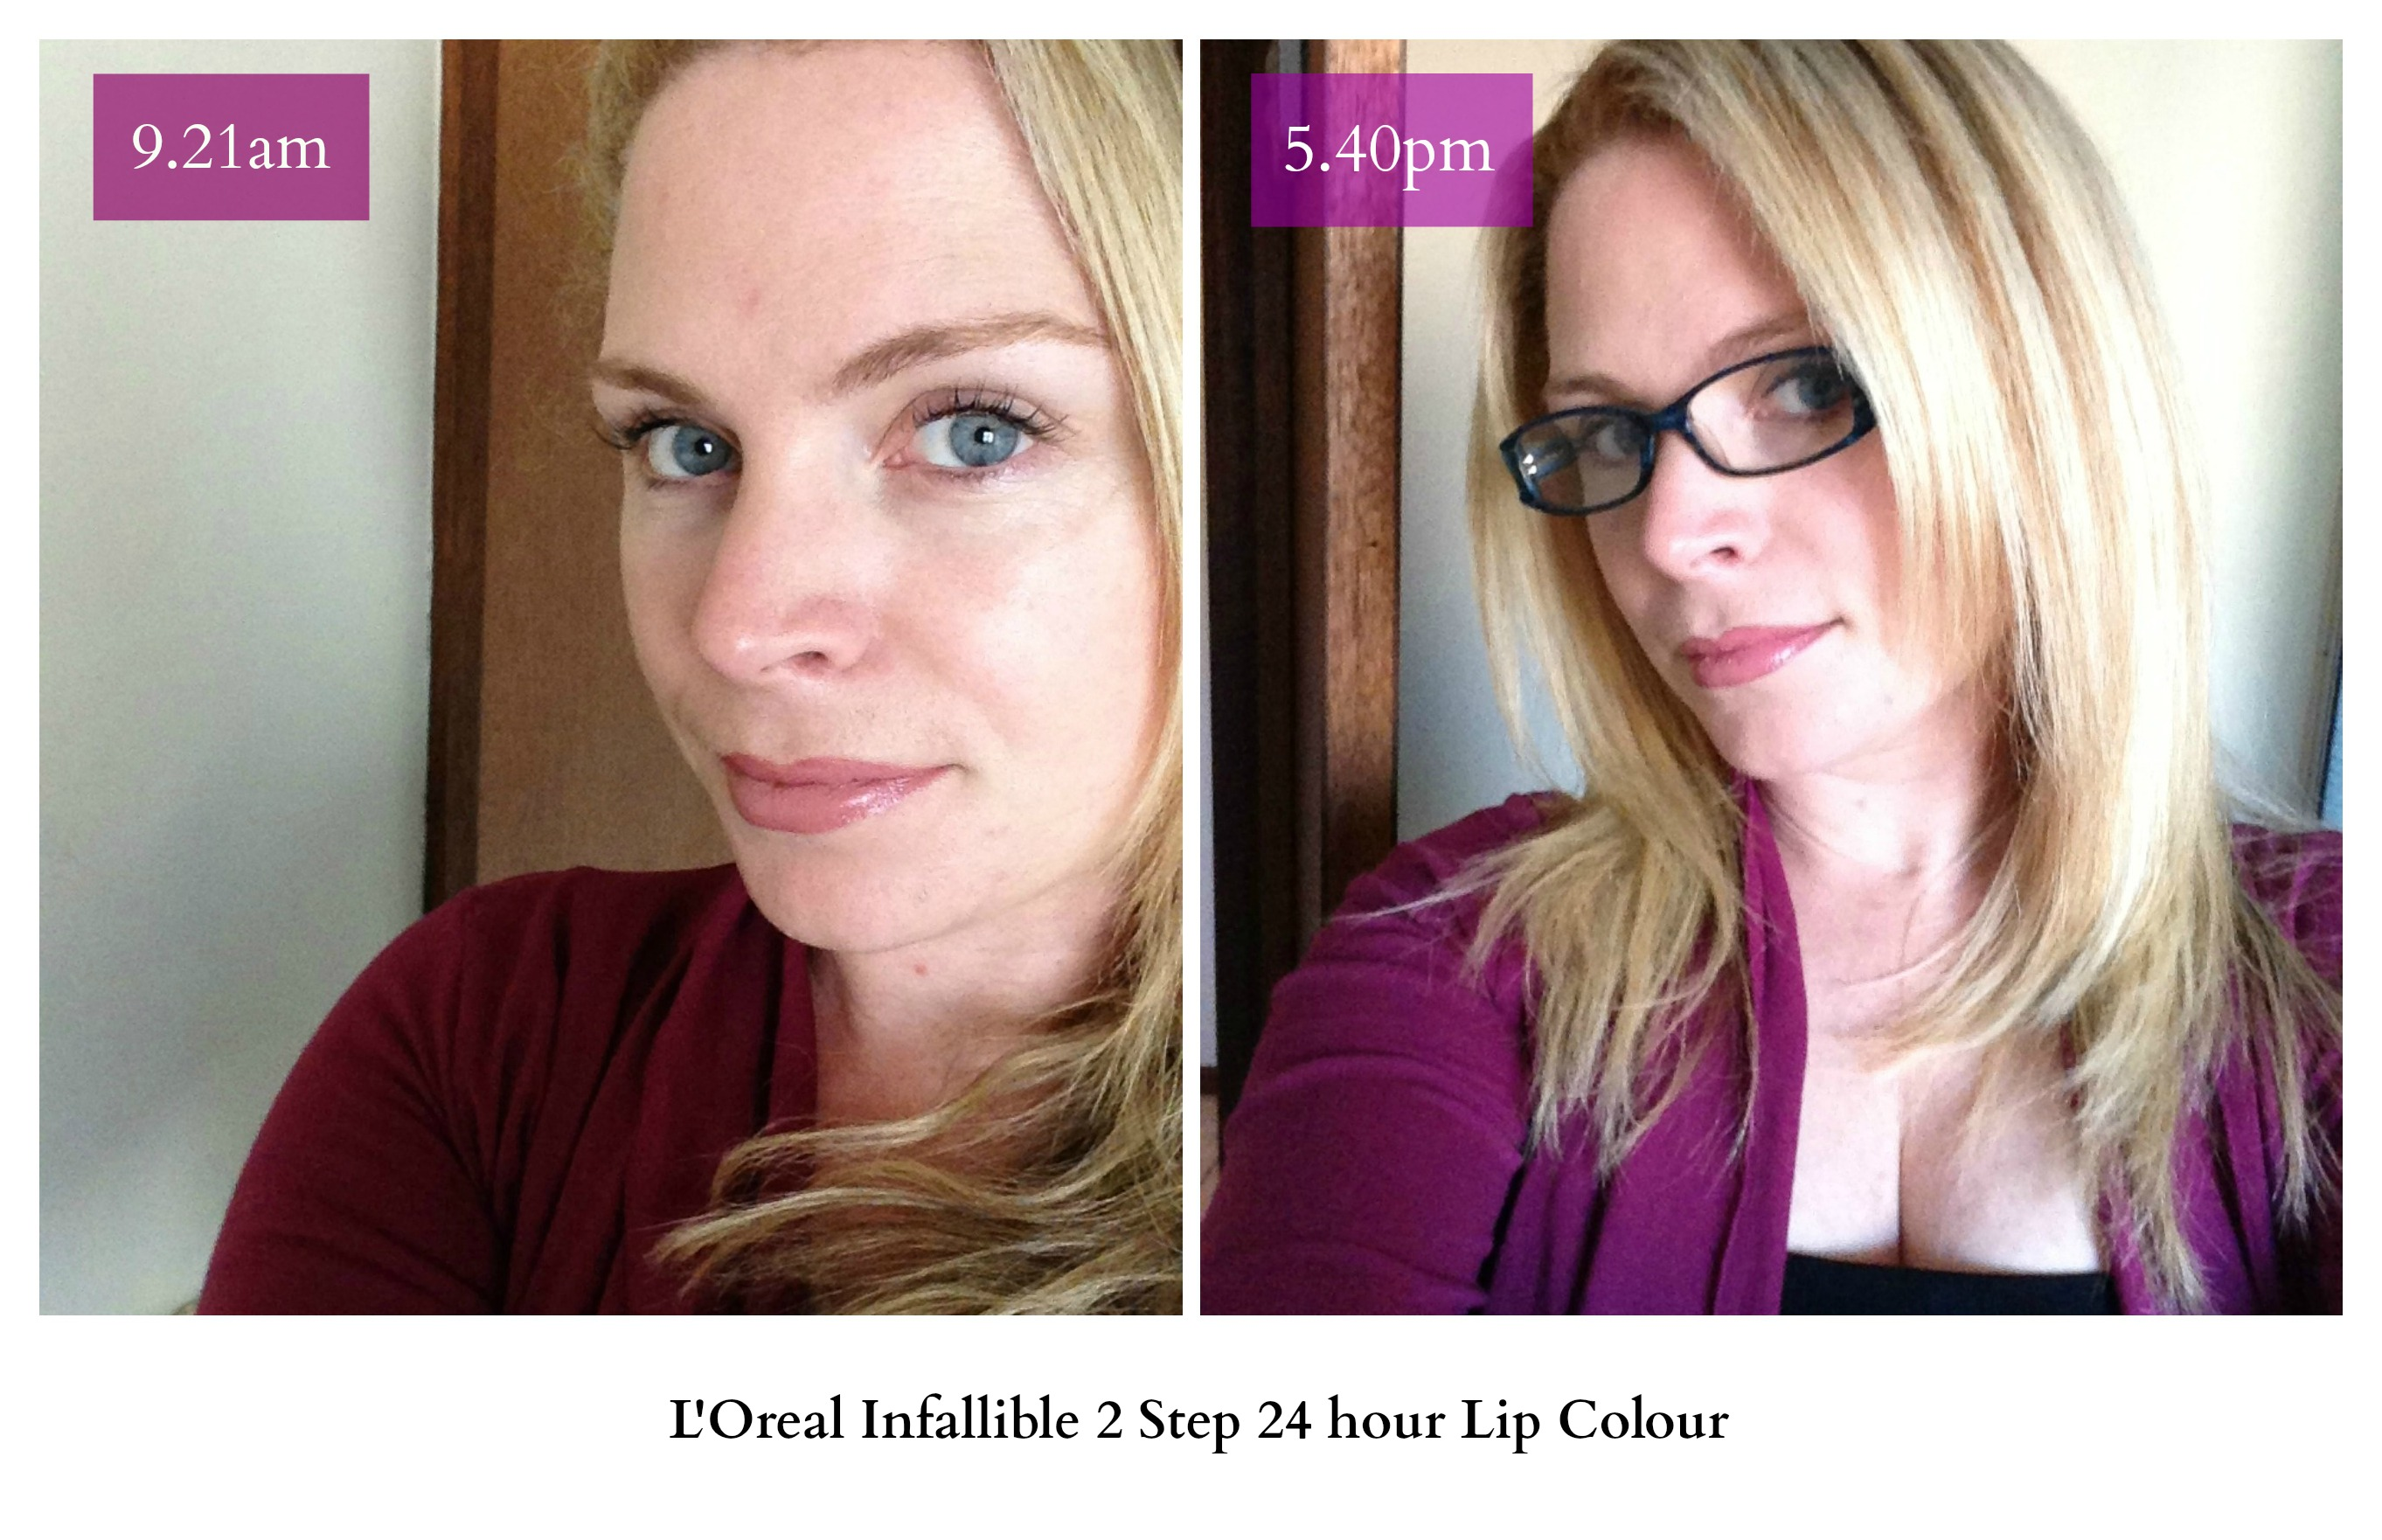 loreal infallible 2 step lipstick review longwear